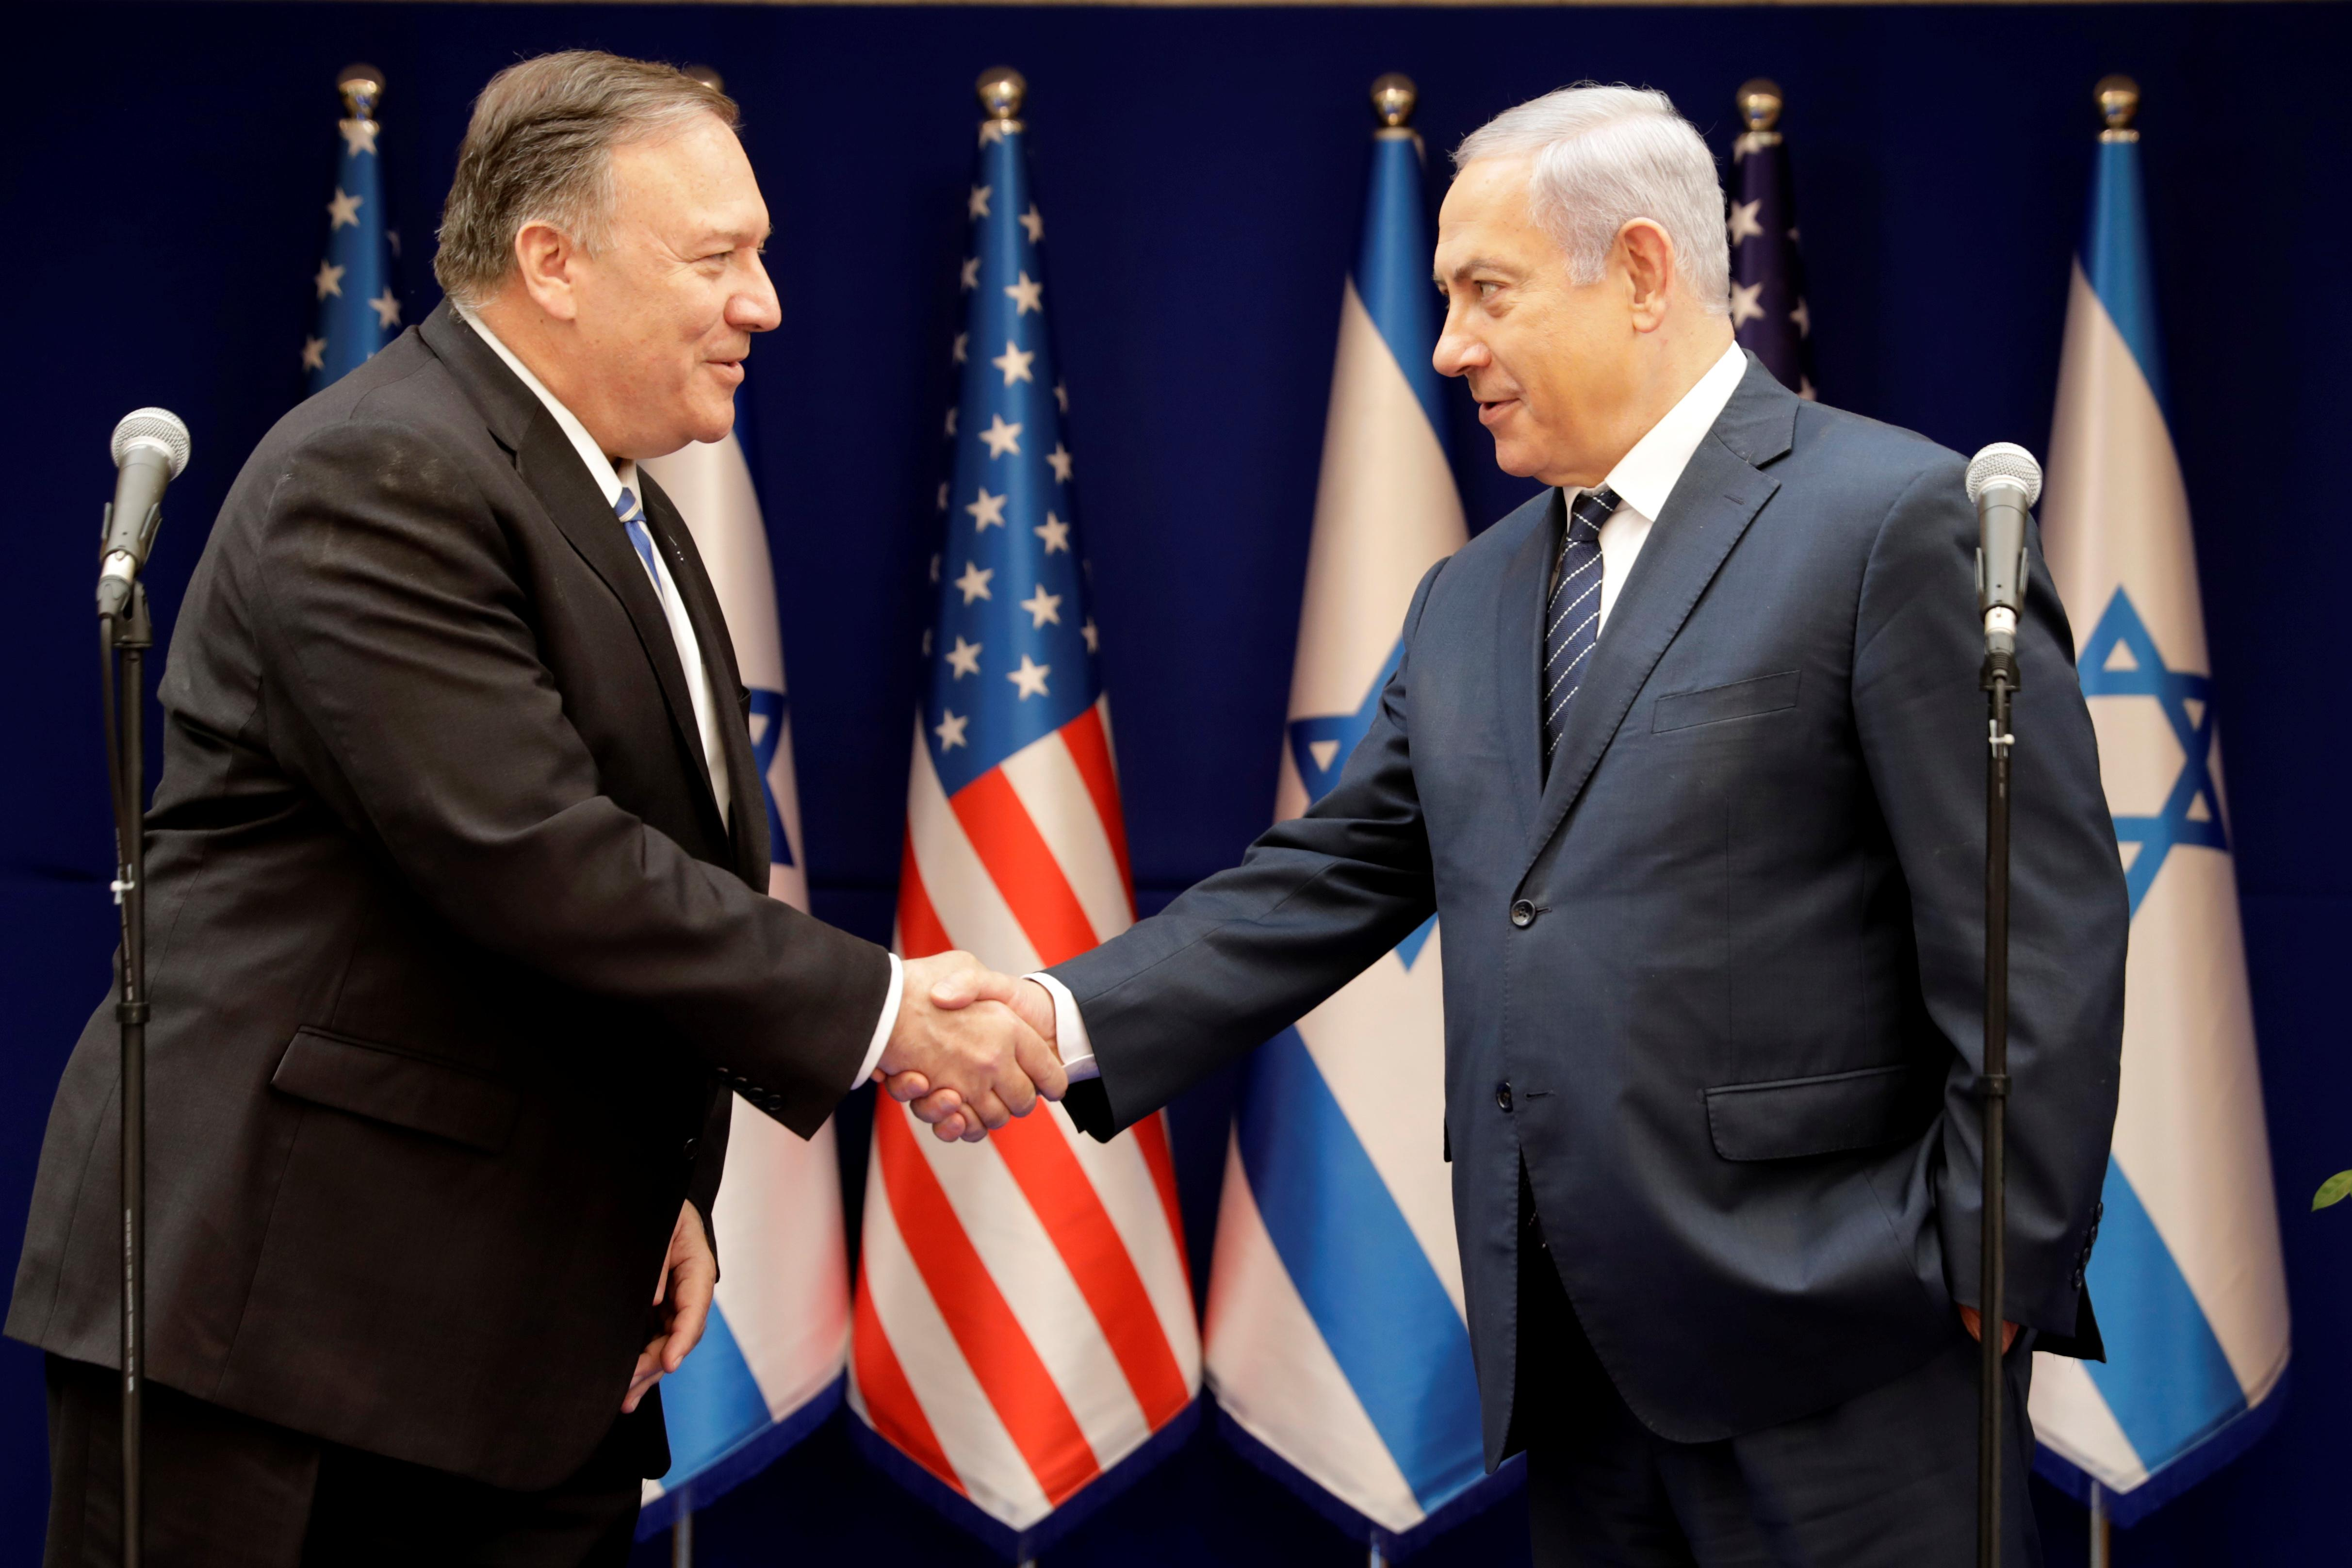 Pompeo assures Israel that U.S. focus stays on Iran 'threat'